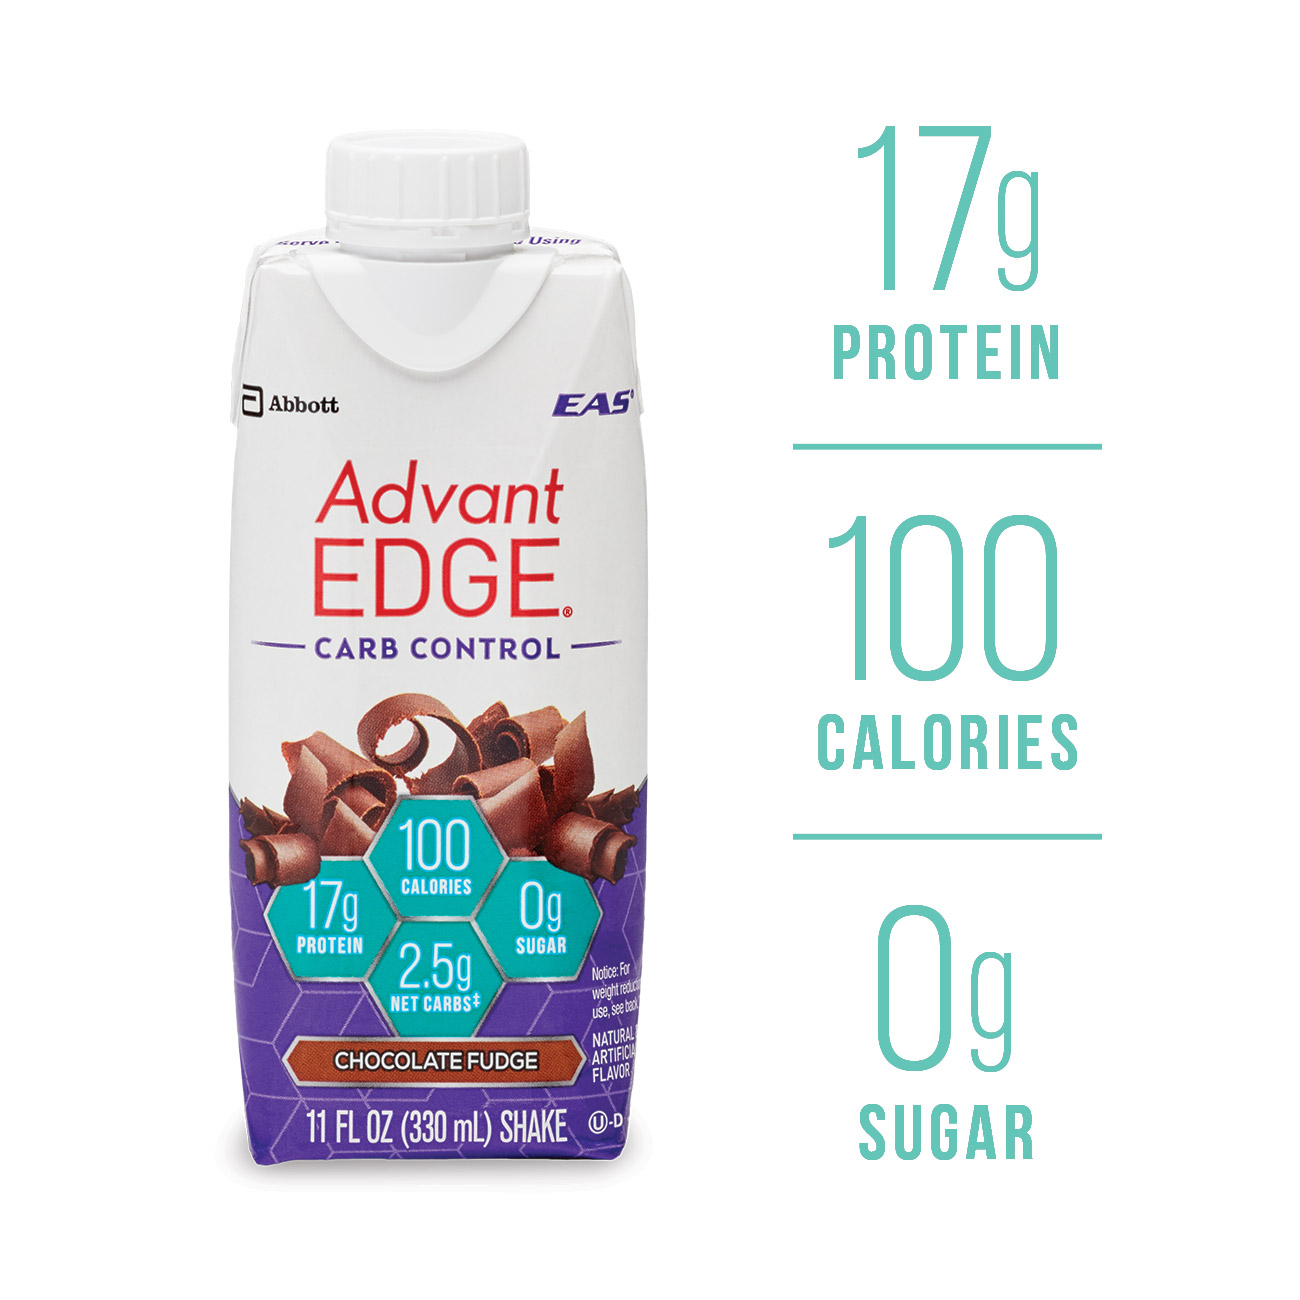 EAS AdvantEDGE Carb Control Protein Shake Chocolate Fudge Ready-to-Drink, 17 g of Protein 11 fl oz Bottle, 4 Count